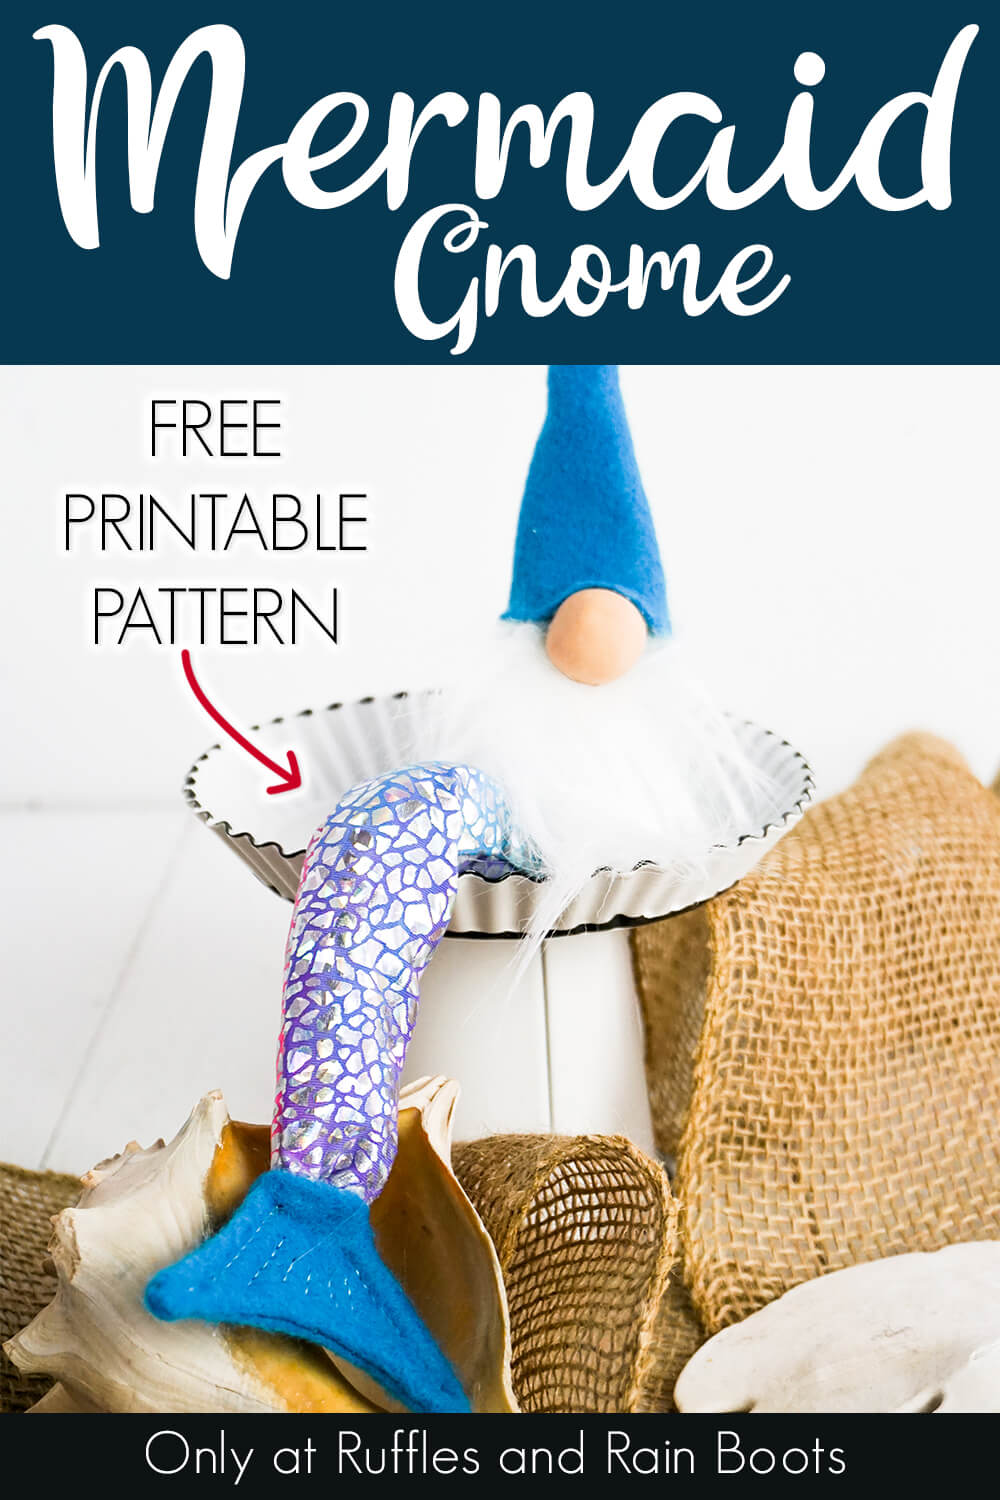 simple gnome pattern for a mermaid gnome on a white background with text which reads mermaid gnome free printable pattern